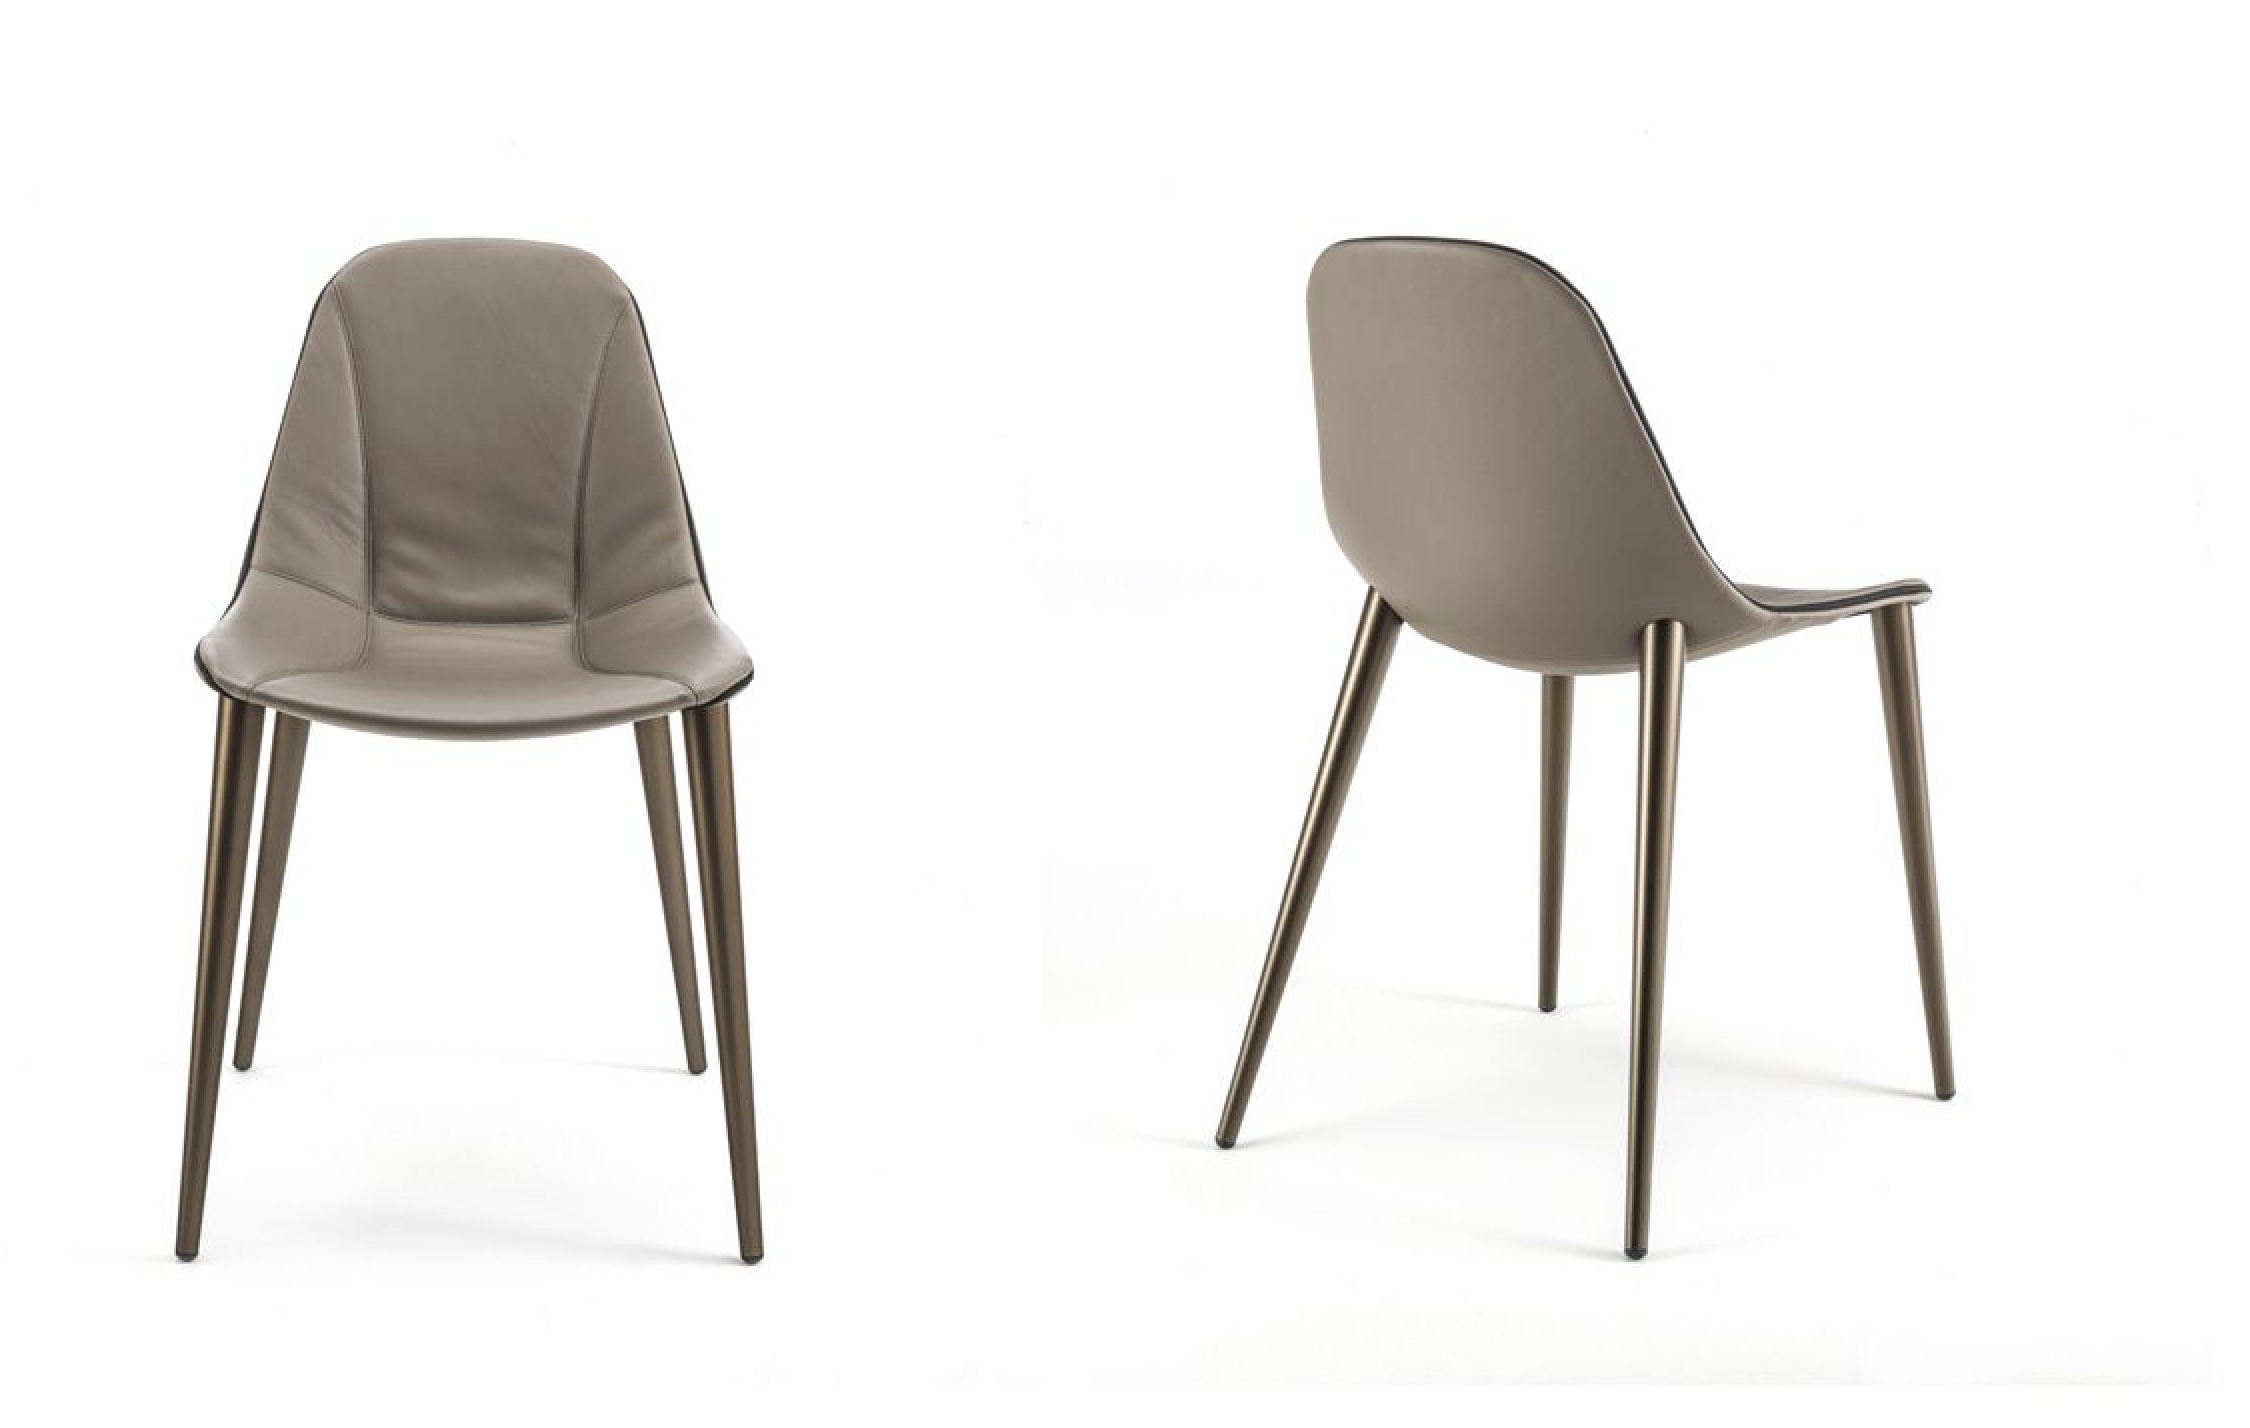 iTALIAN MODERN CHAIRS - Luxury Italian dining chairs made in Italy